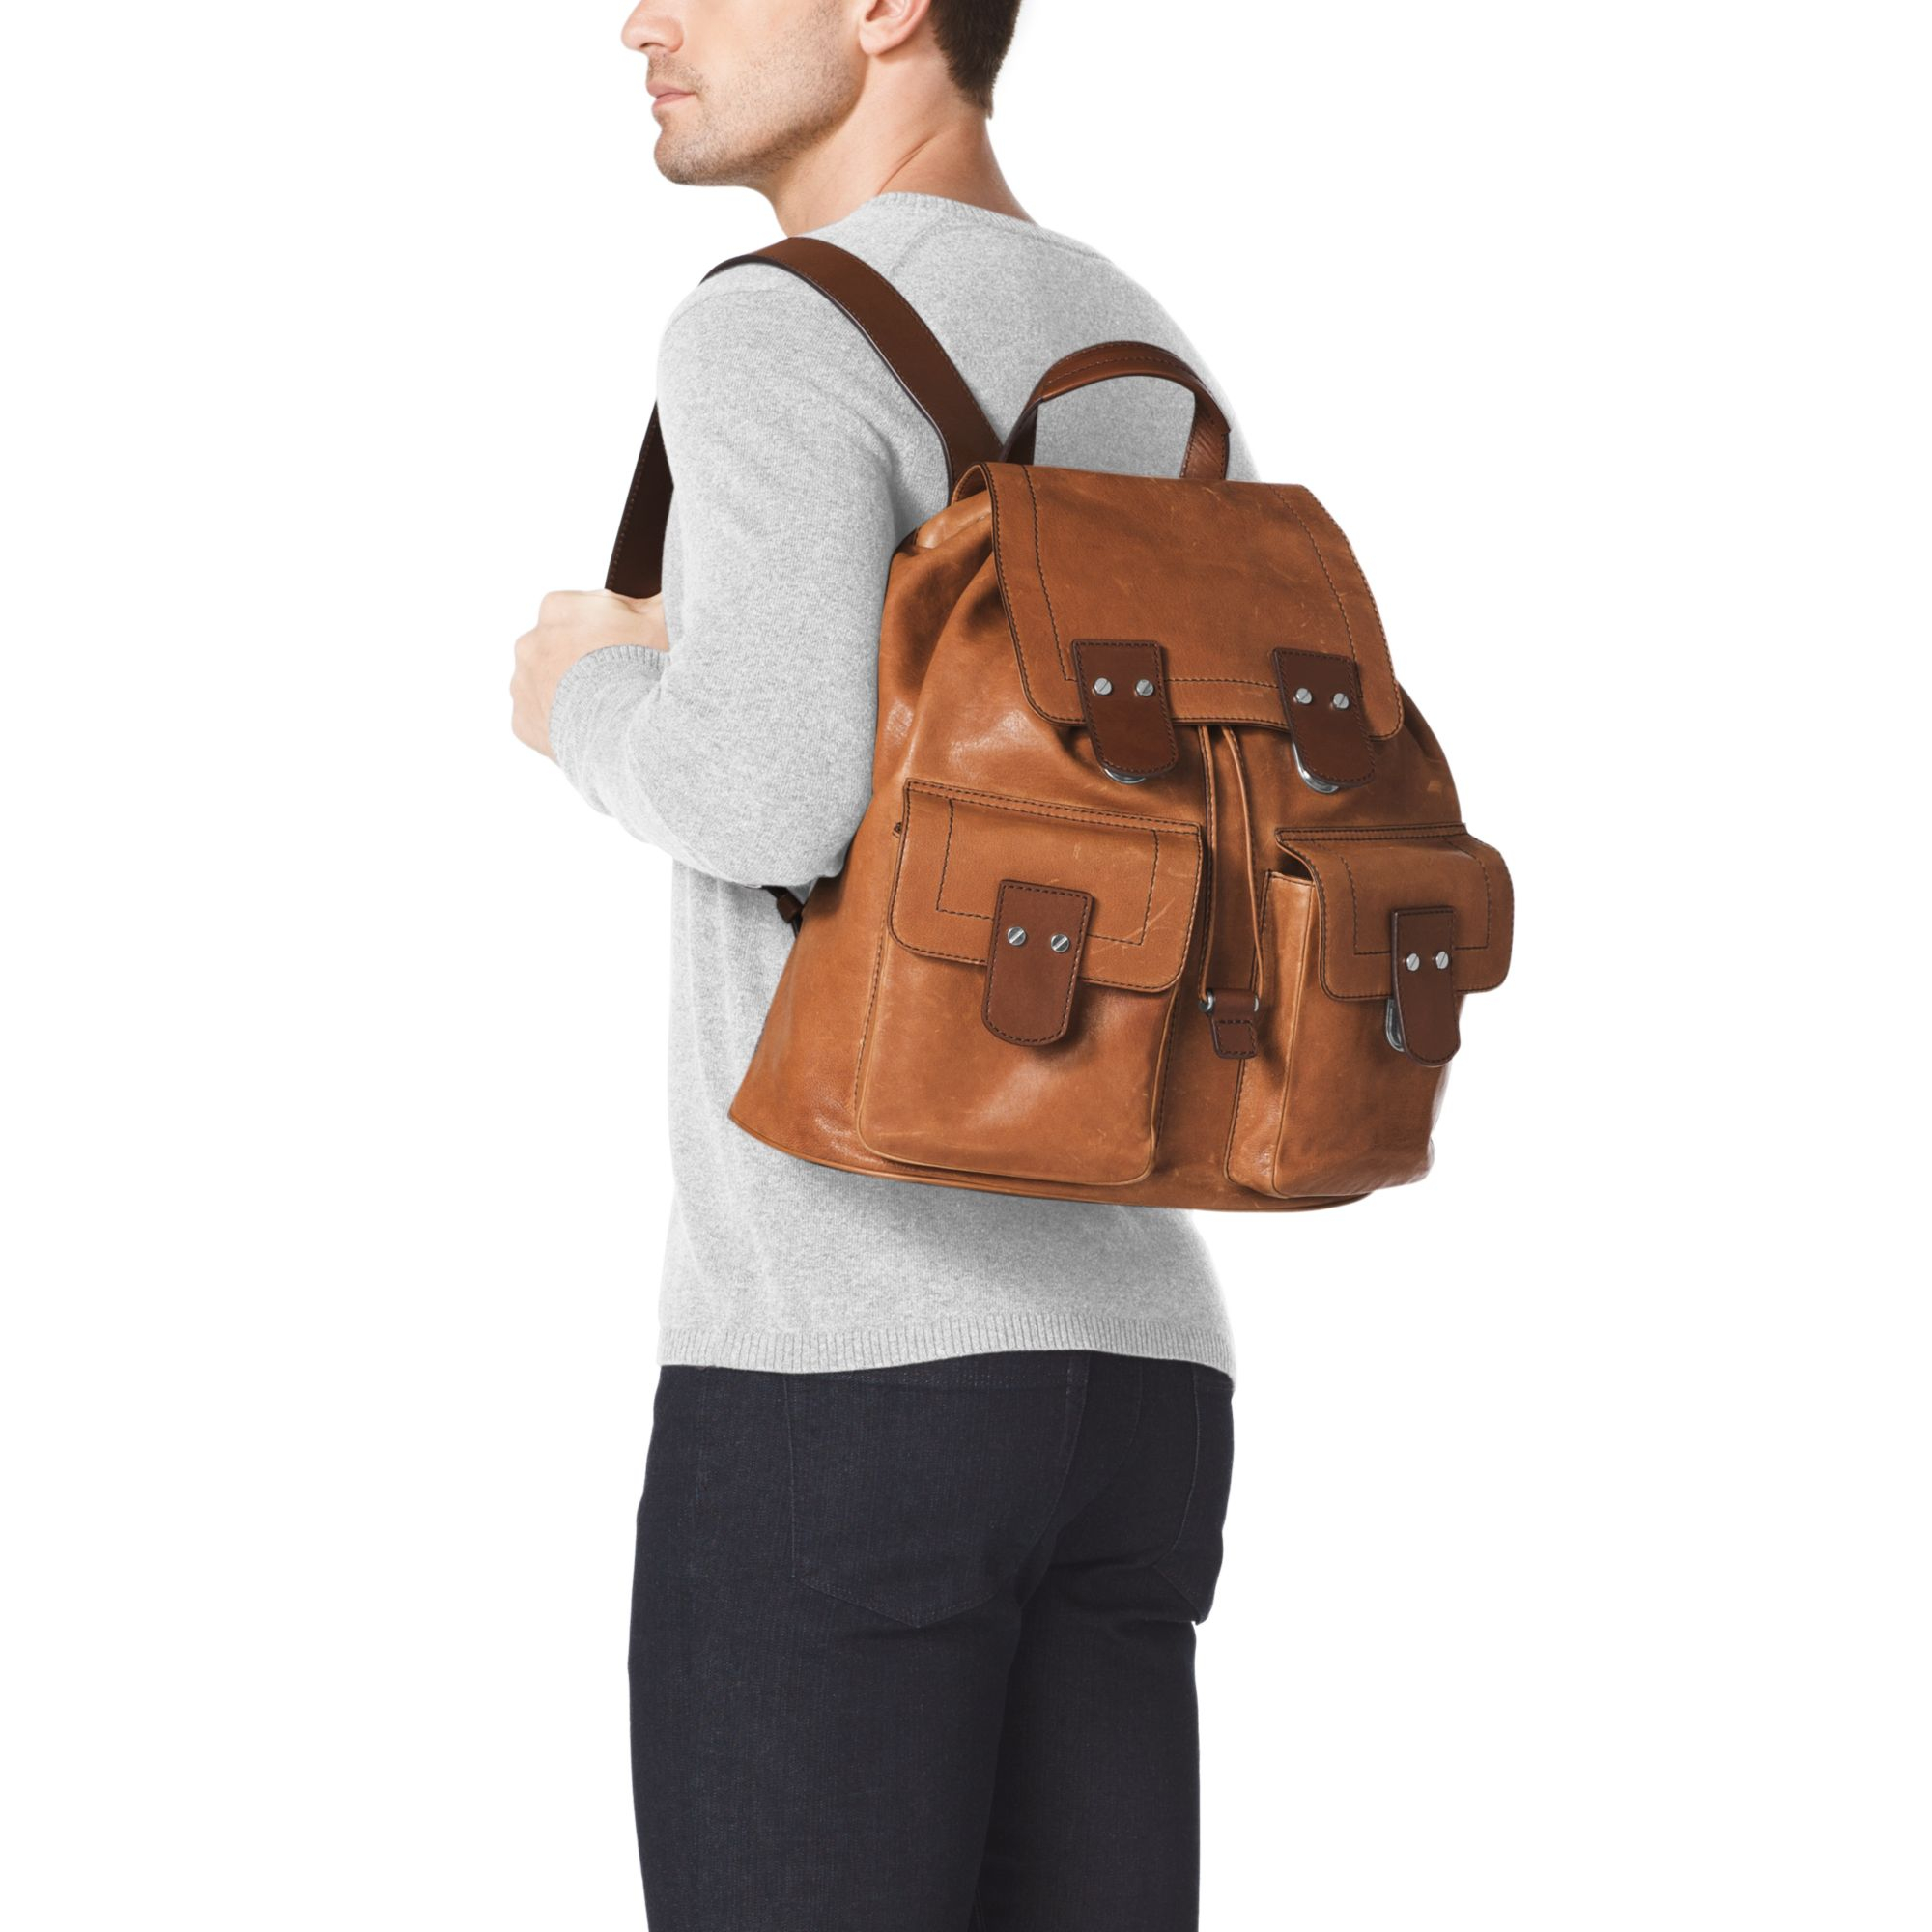 84dbcfbd564b ... wholesale lyst michael kors wilder vintage leather backpack in brown  for men 4d8e8 4be02